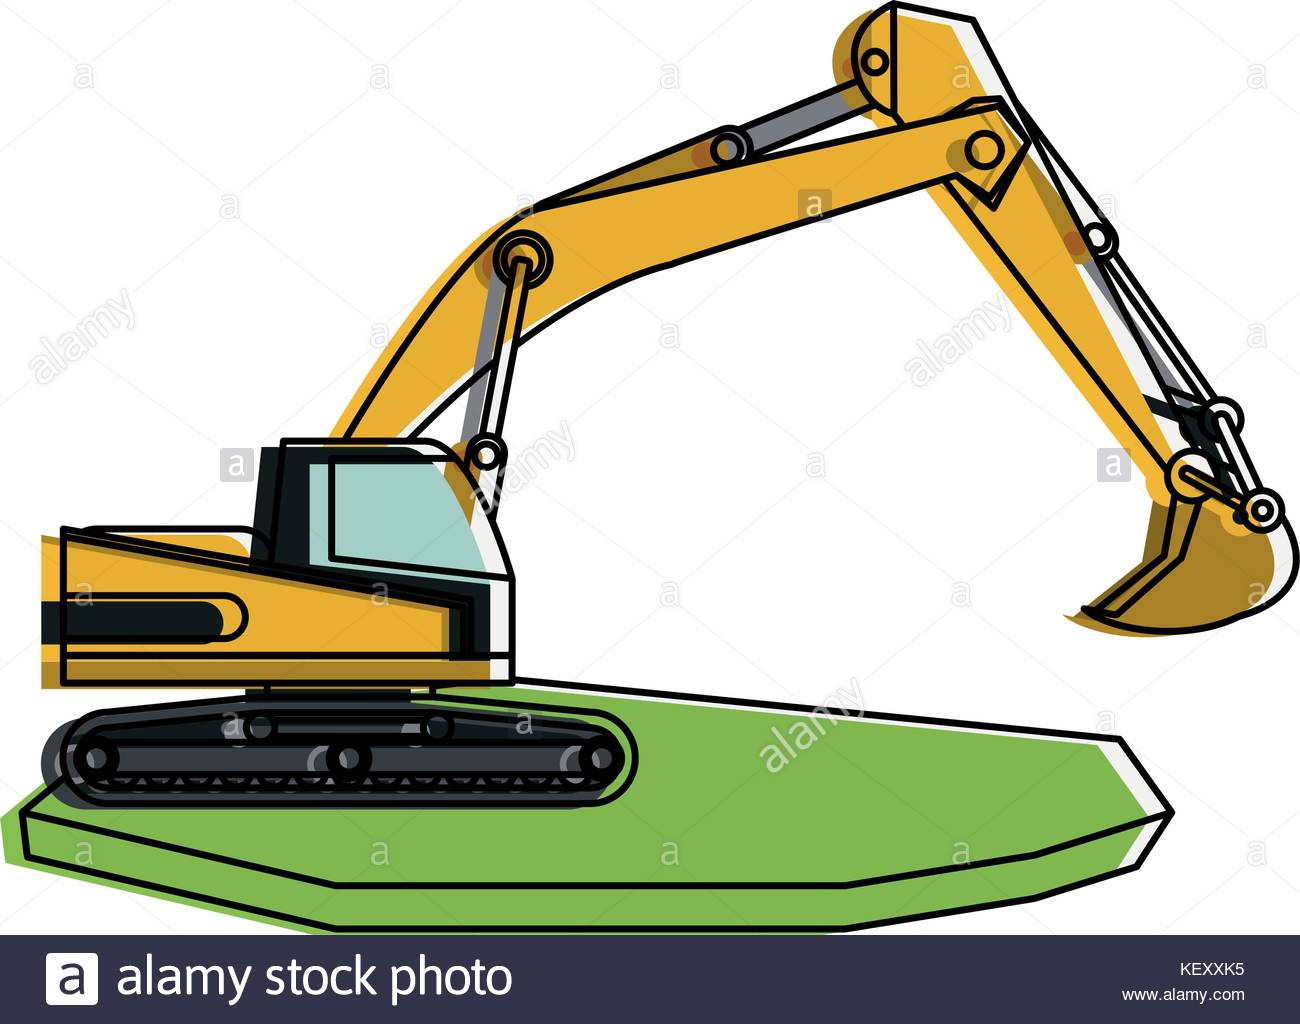 Heavy machinery construction icon. Backhoe clipart engineering equipment jpg library download